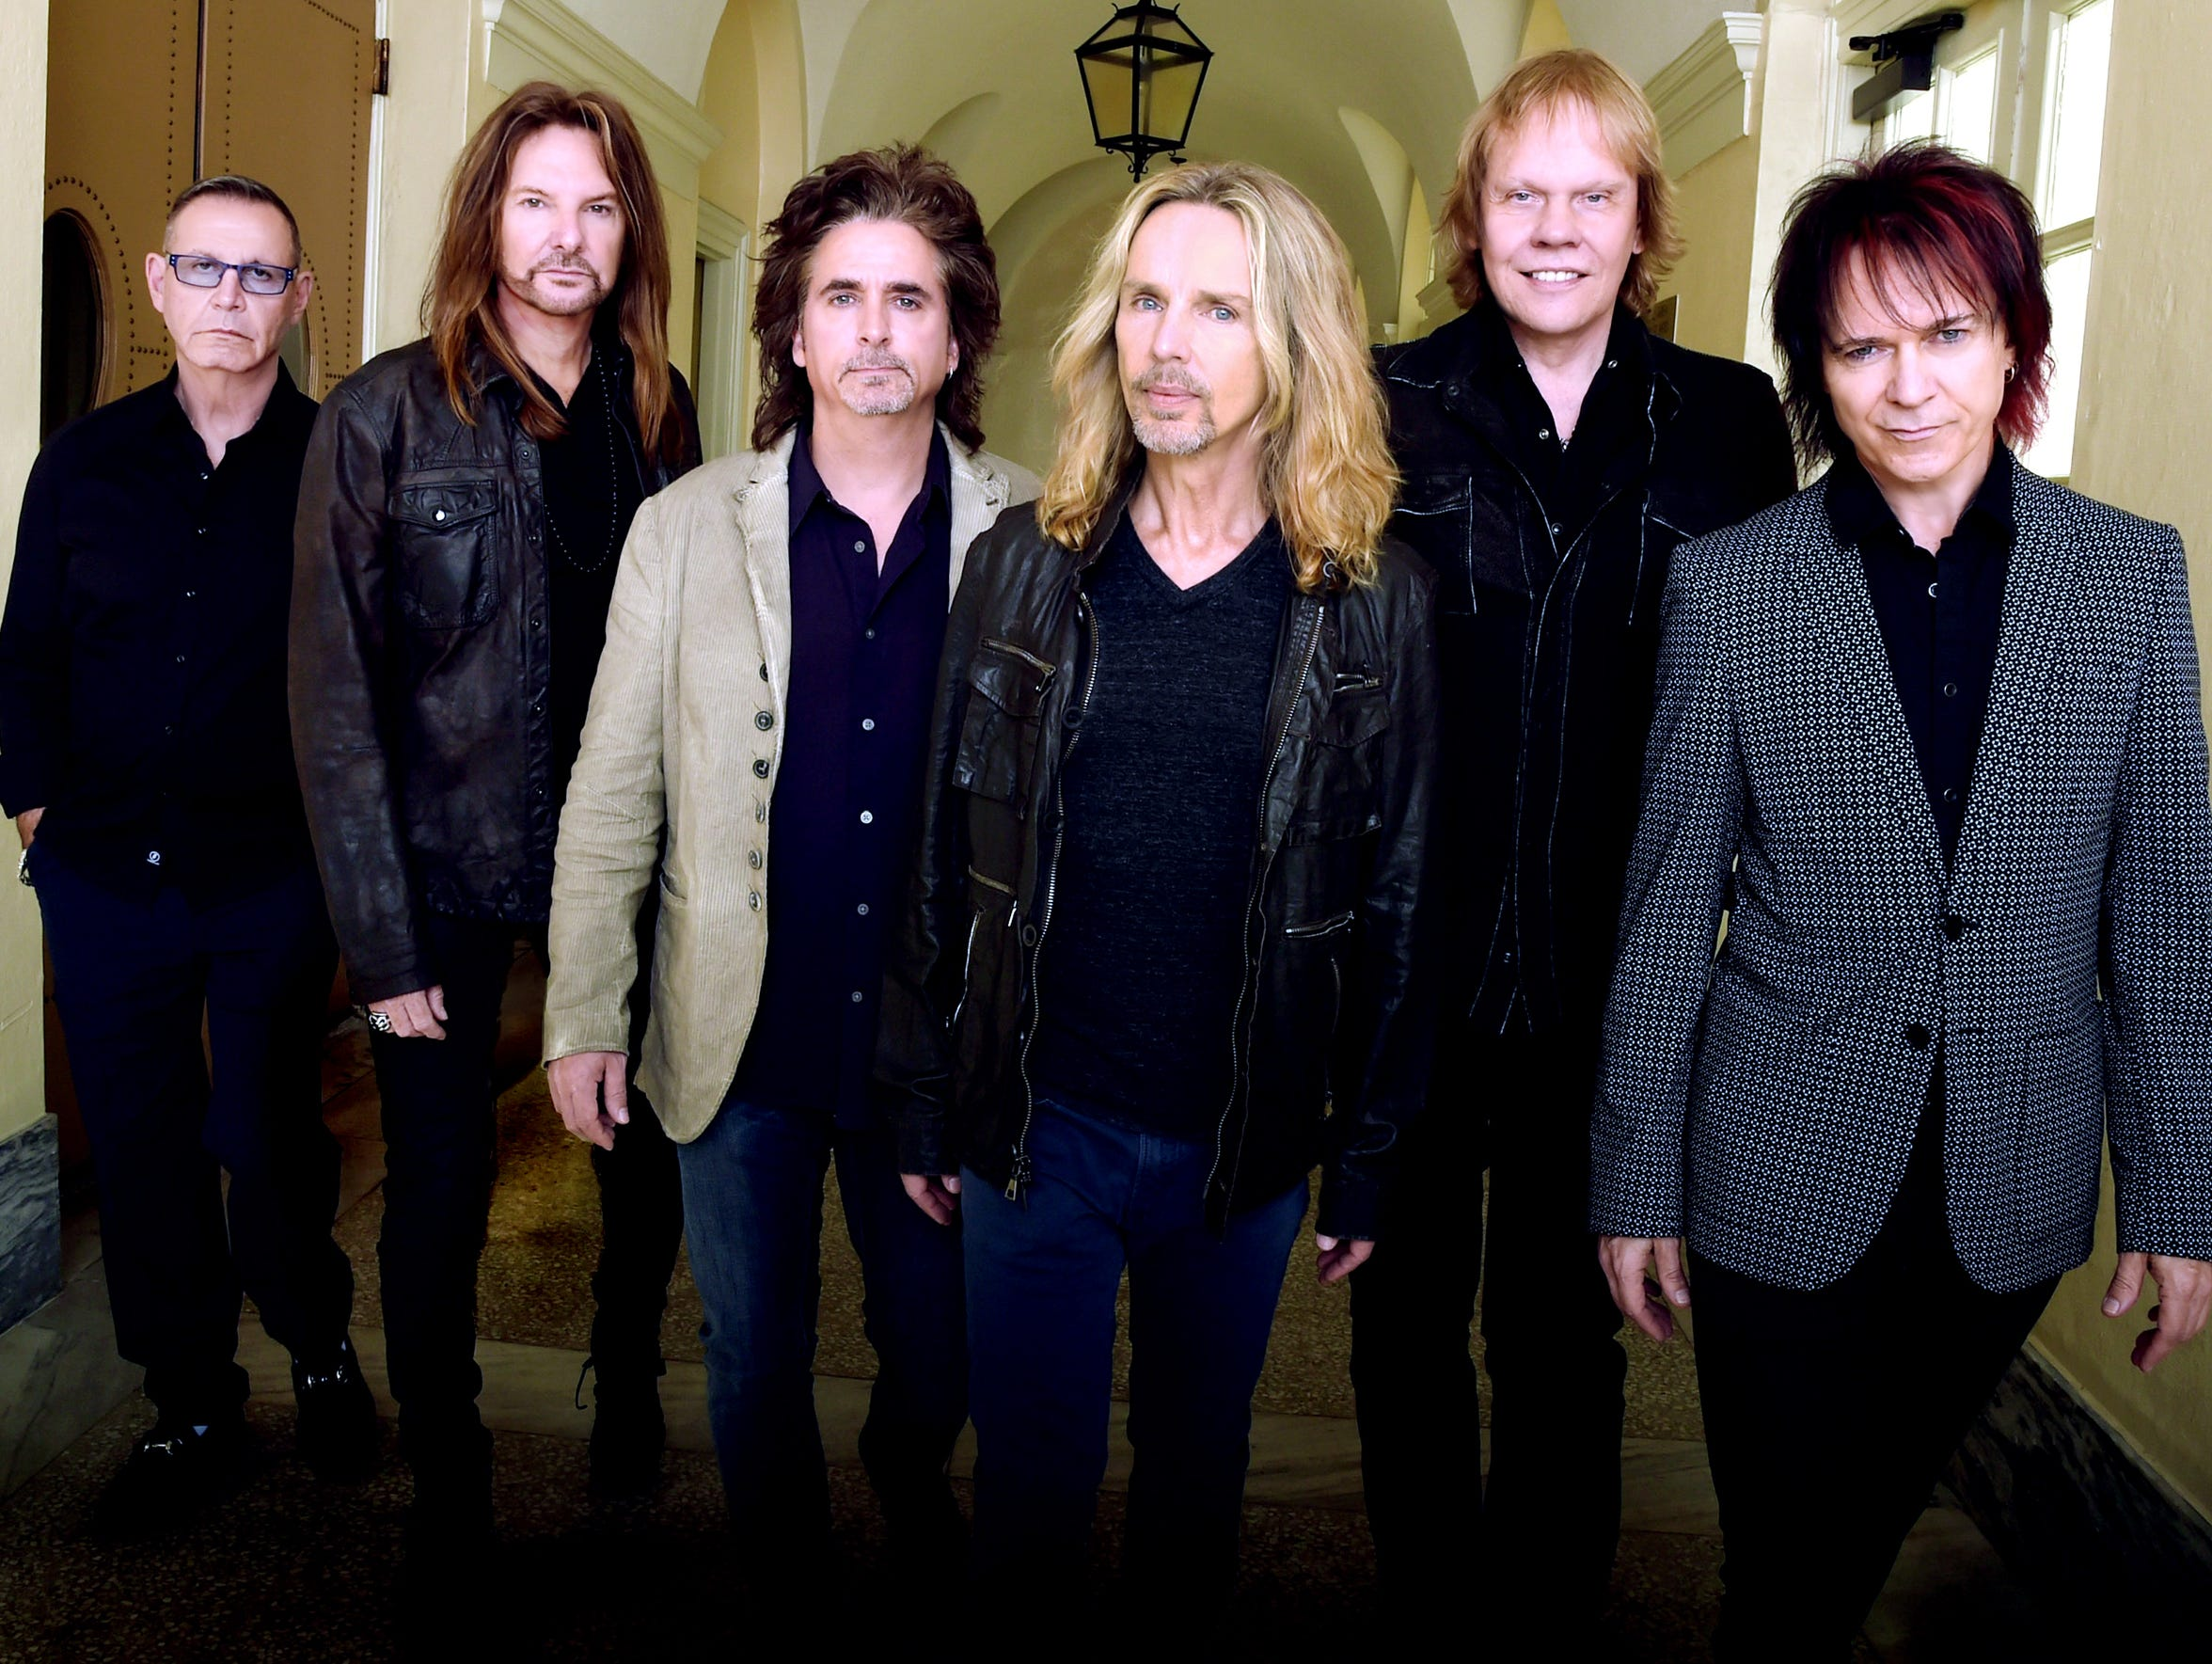 STYX will perform at 7 p.m. Friday, Aug. 24.